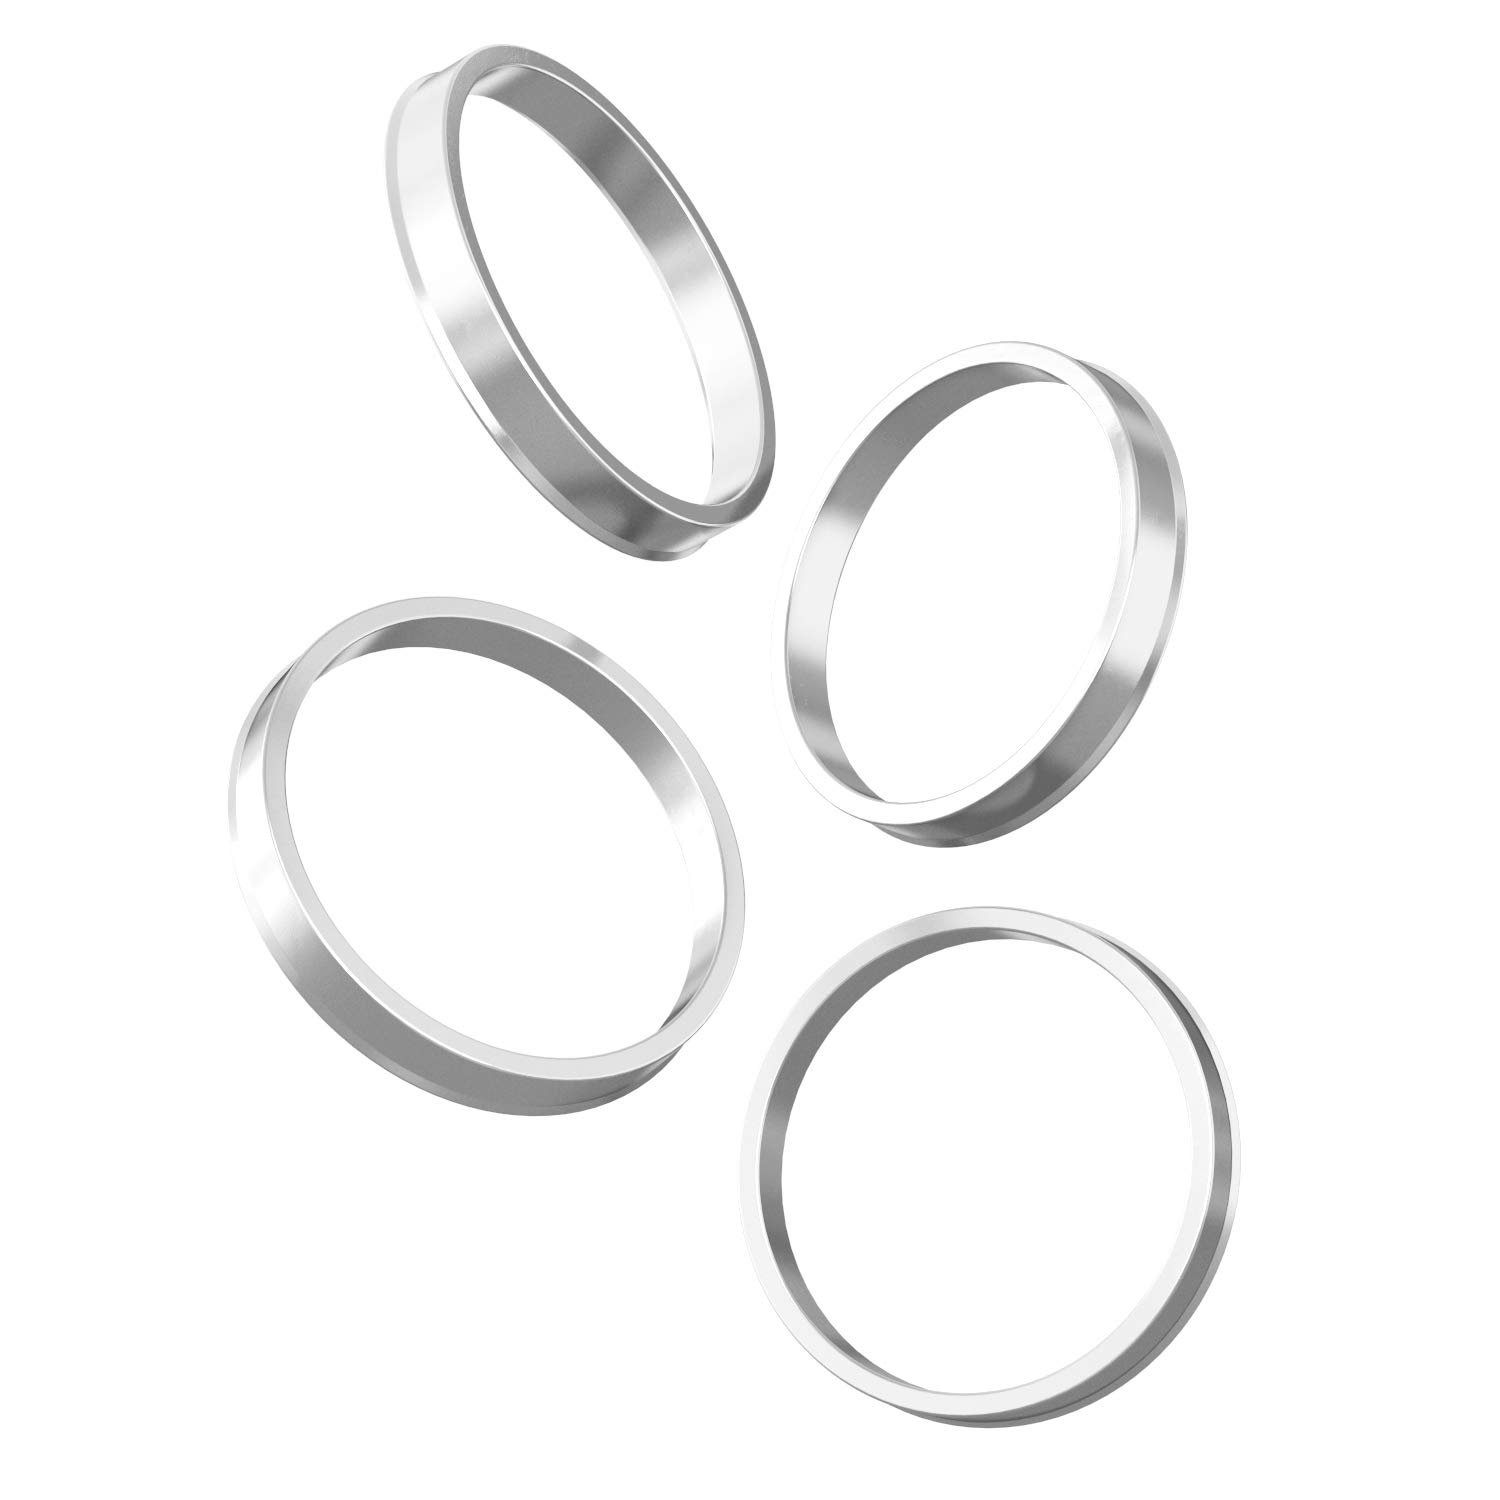 Pack of 4 Silver Aluminum Hubrings Fits many Jeep Dodge Chrysler Vehicles - 71.6mm ID to 72.6mm OD Fits on 71.6mm Hubs /& 72.6mm Bore Wheels Hubcentric Rings